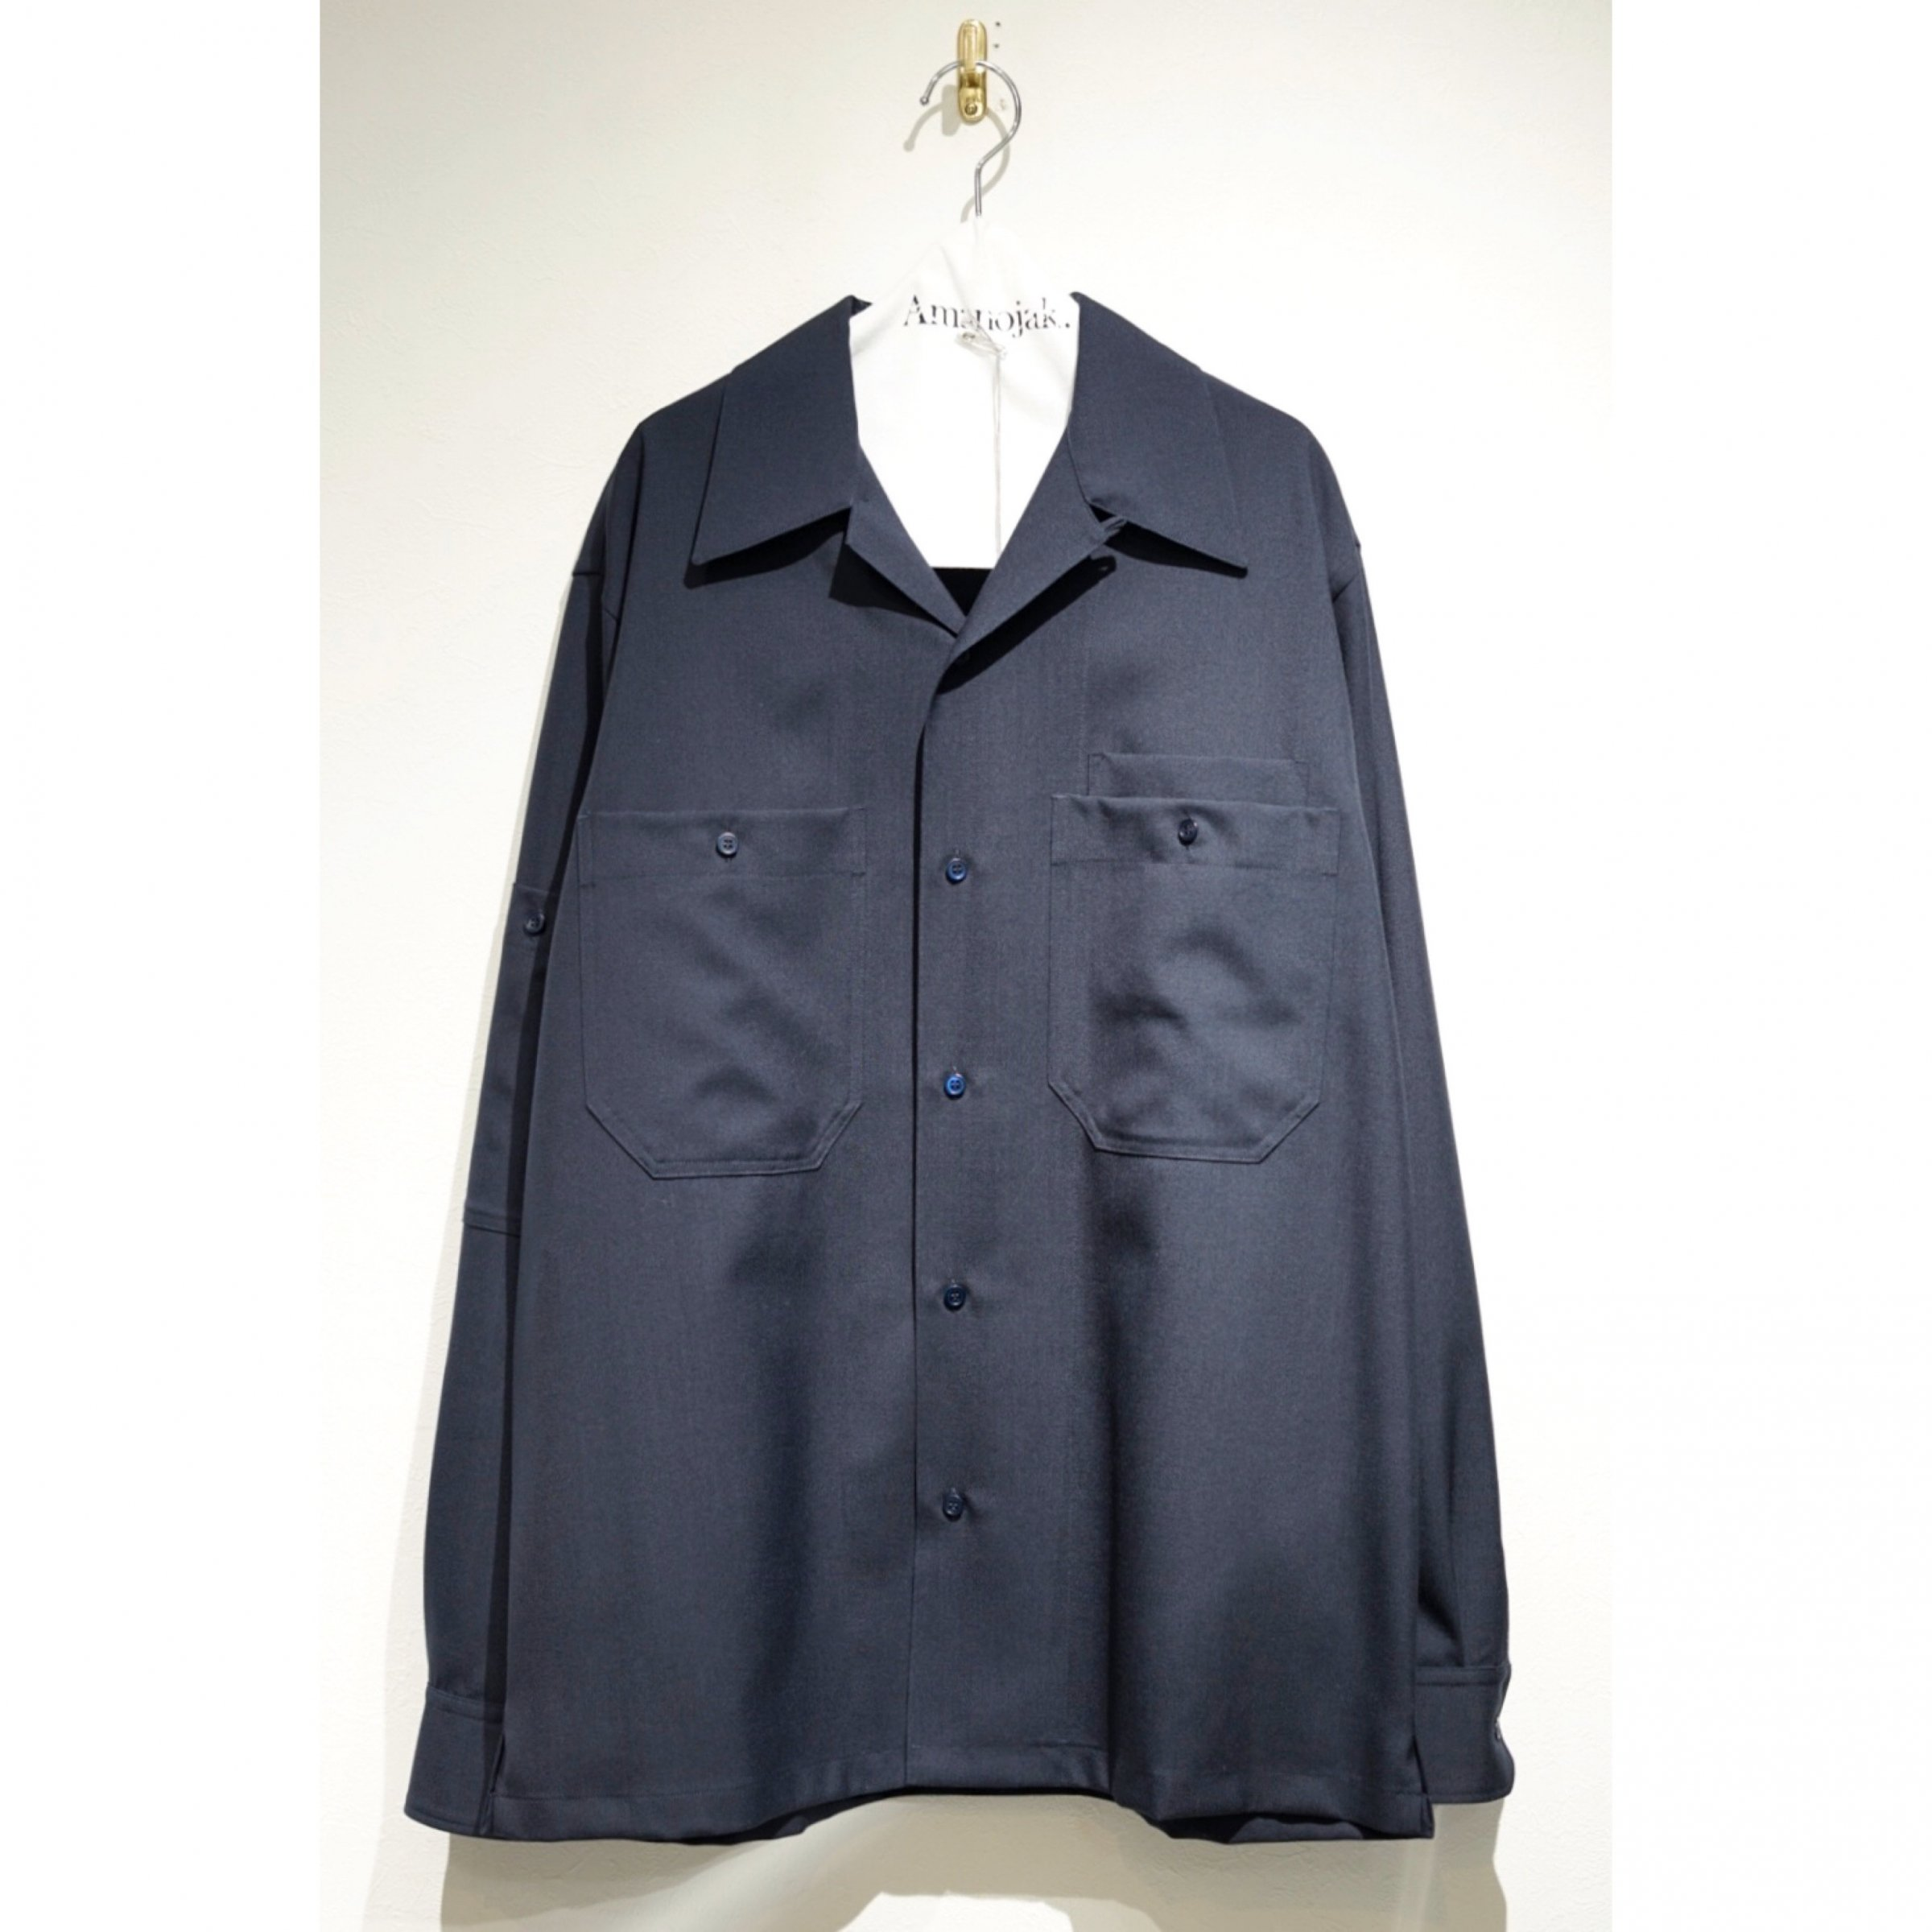 MARNI-WOOSTED WOOL OPEN COLLAR SHIRTS BLUE NAVY<br>(在庫なし)